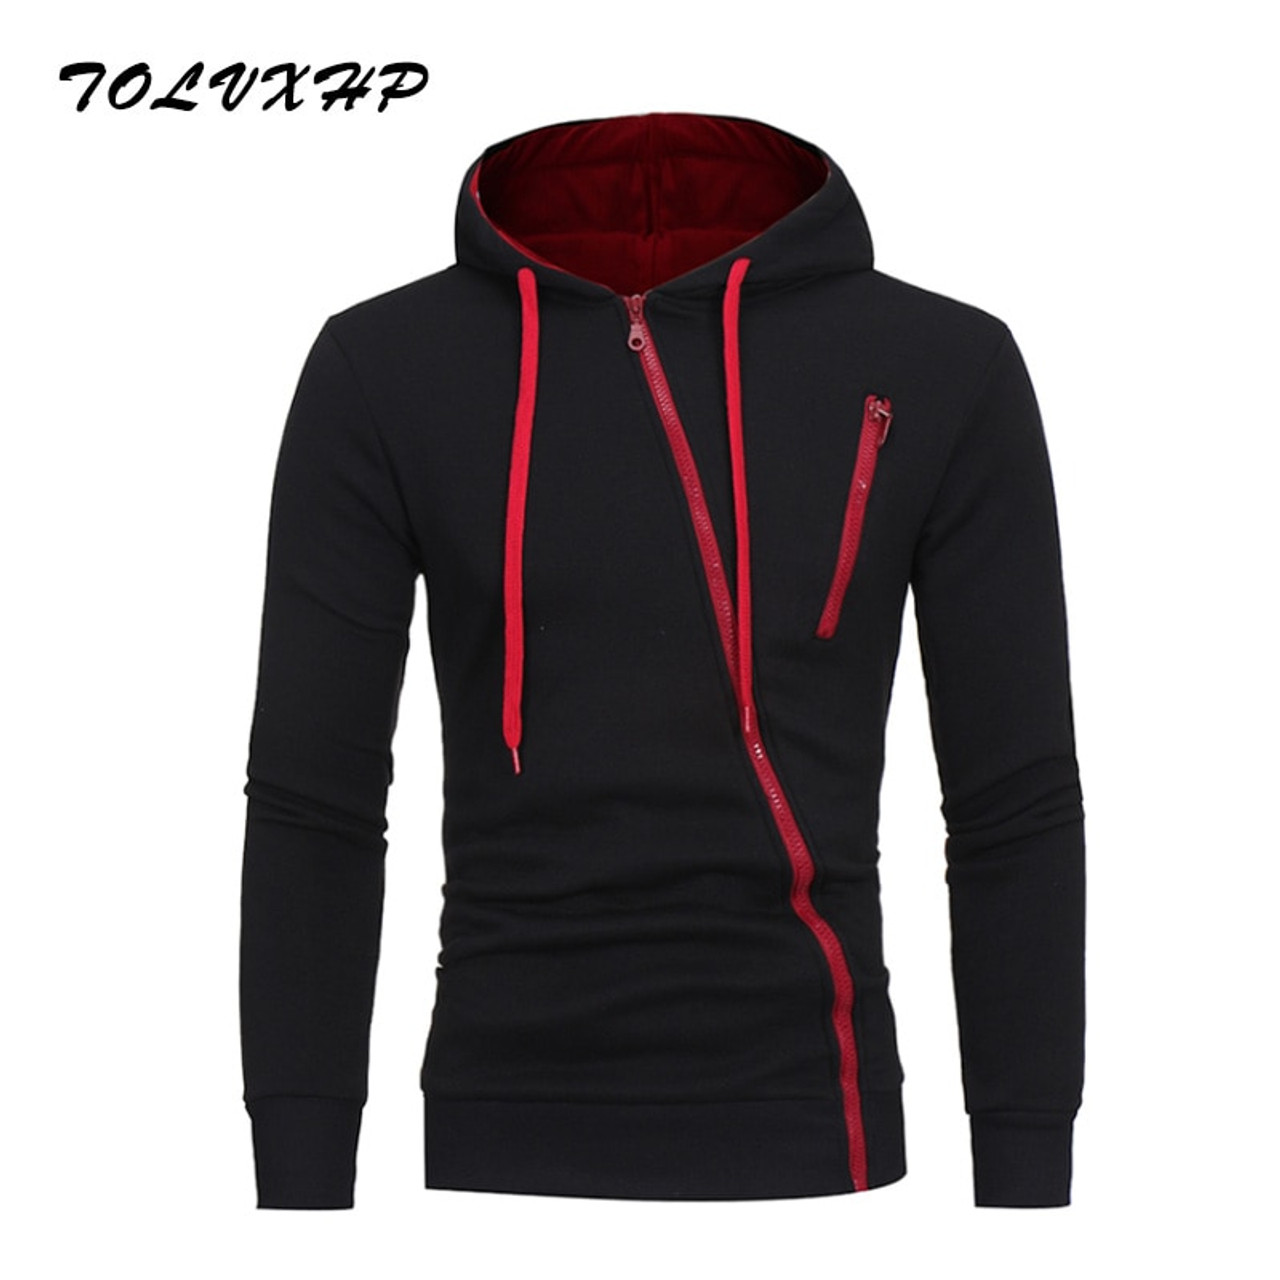 Tolvxhp Brand 2019 Hoodie Oblique Zipper Solid Color Hoodies Men Fashion Tracksuit Male Sweatshirt Hoody Mens Purpose Tour 3xl Hoodies & Sweatshirts